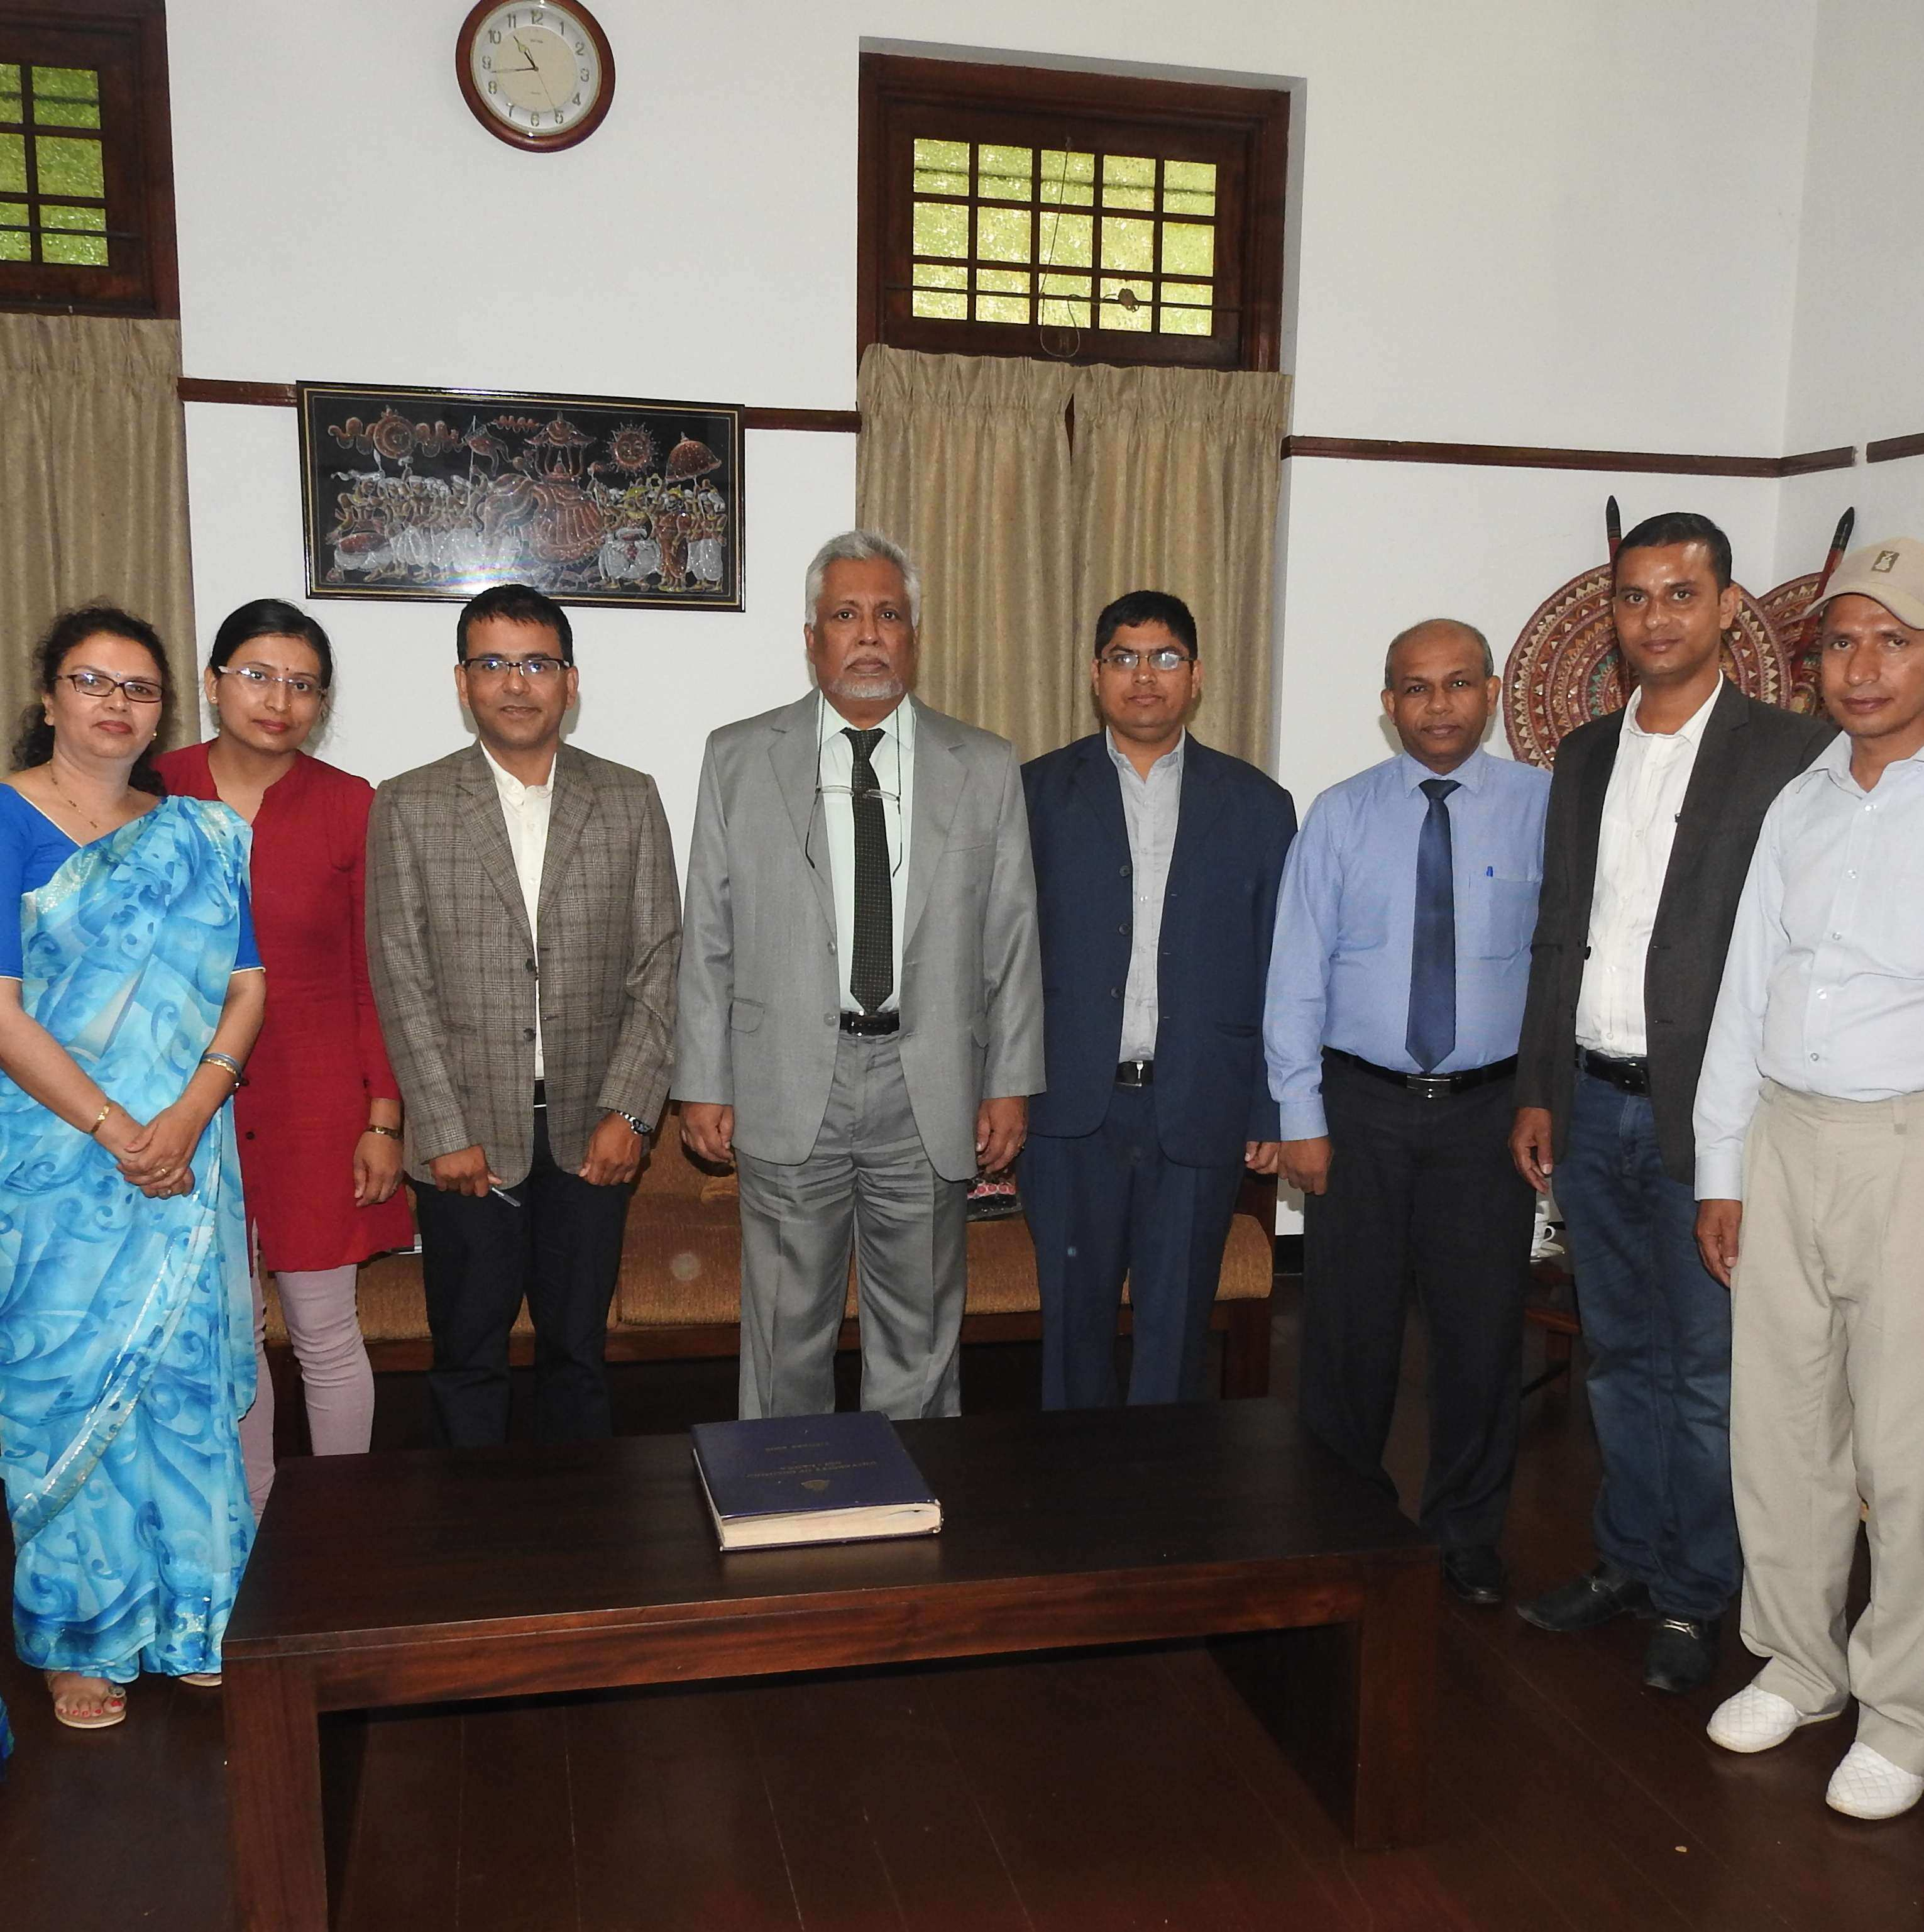 A delegation from University Grants Commission, Nepal visited University of Colombo